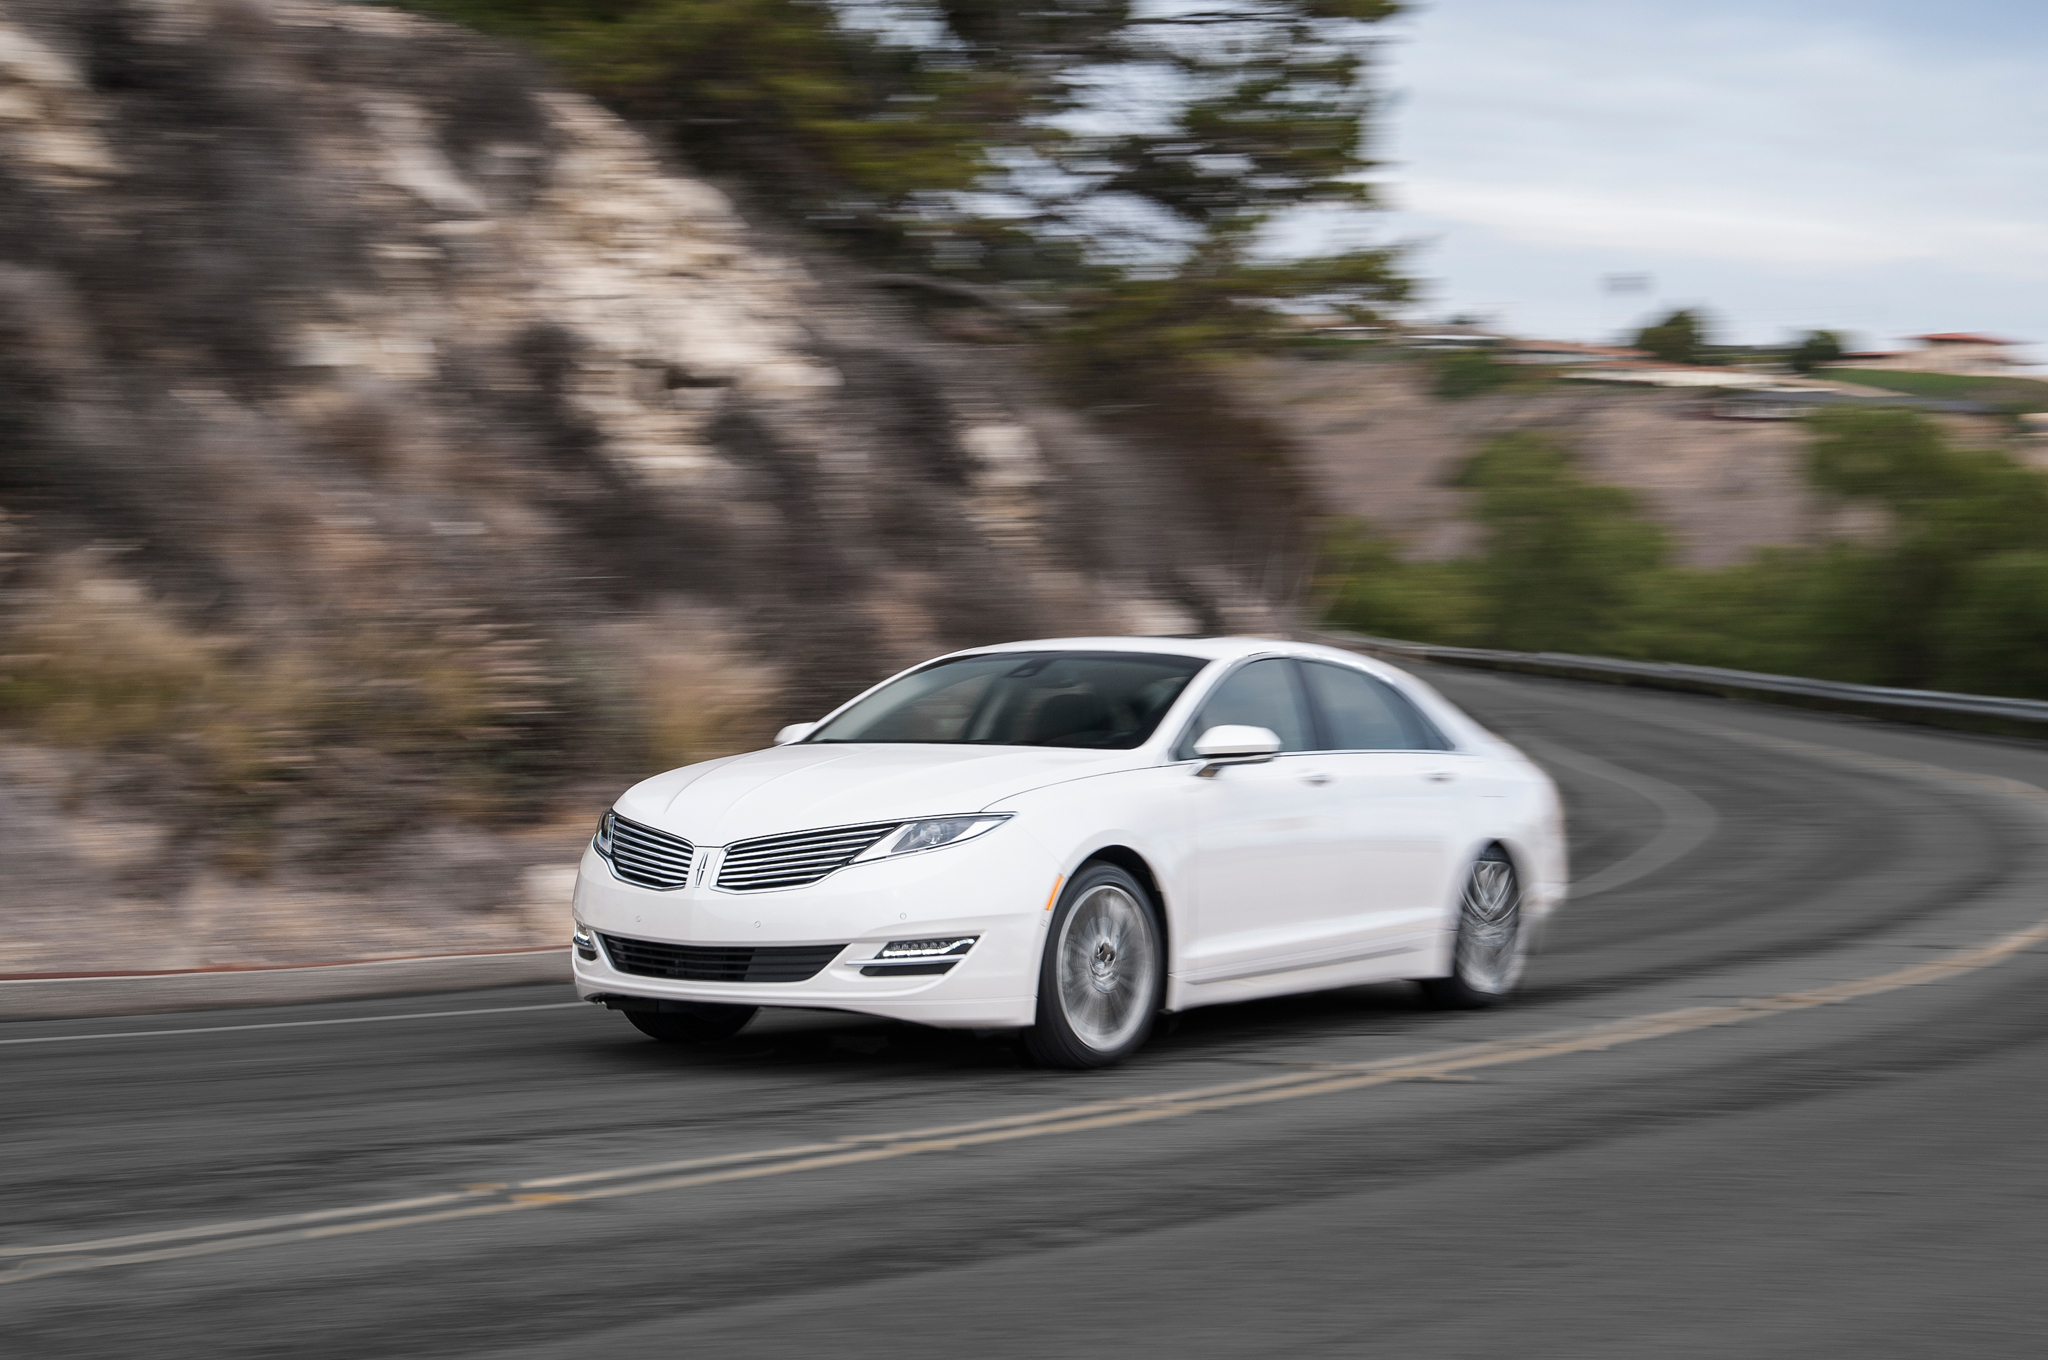 2014 Lincoln Mkz Hybrid First Test Motor Trend